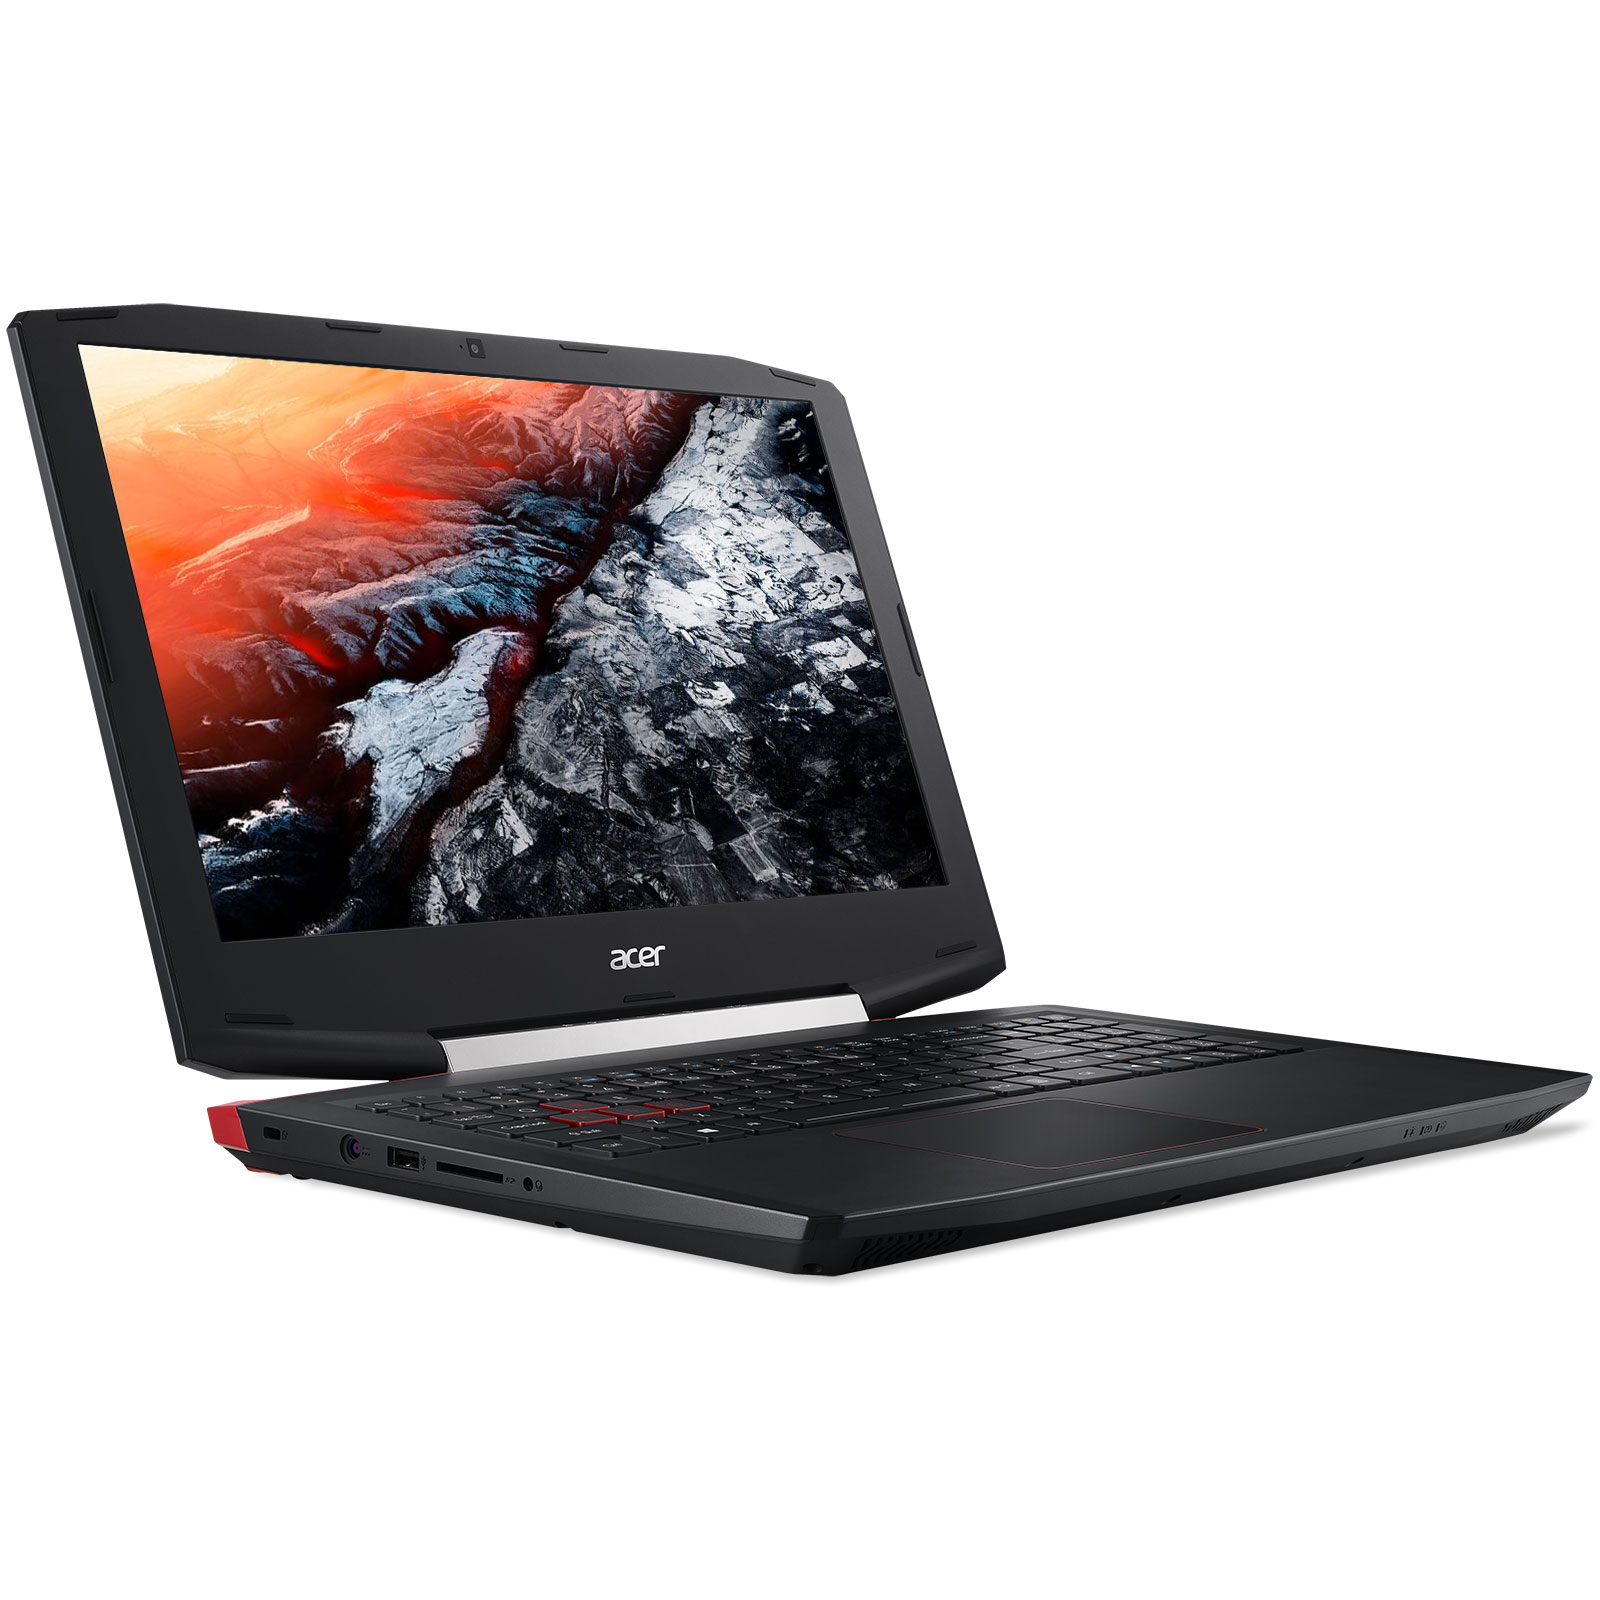 "PC portable Acer Aspire VX15 VX5-591G-763C Intel Core i7-7700HQ 16 Go SSD 256 Go + HDD 1 To 15.6"" LED Full HD NVIDIA GeForce GTX 1050 Ti 4 Go Wi-Fi AC/Bluetooth Webcam Windows 10 Famille 64 bits"